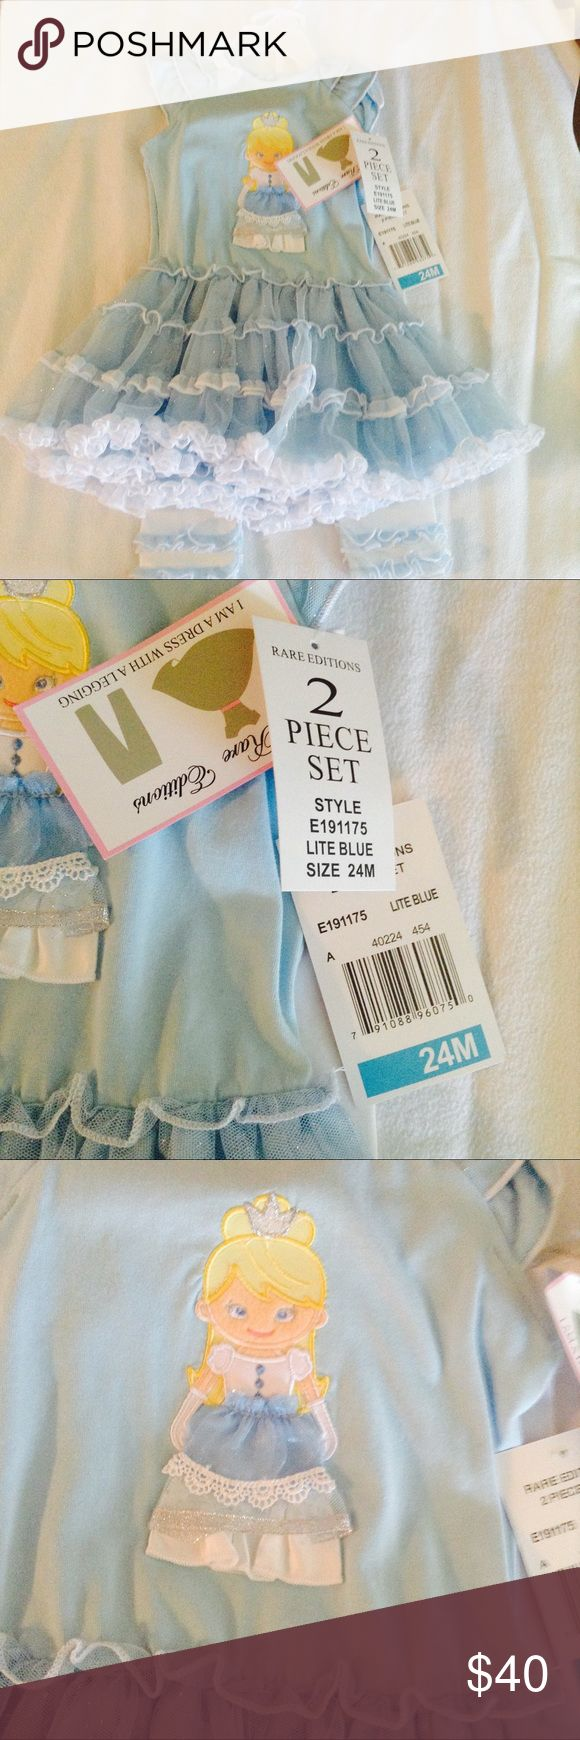 NEW Rare Editions Cinderella Outfit New with tags. 24 months. Price is between $45-$55 Rare Editions Matching Sets